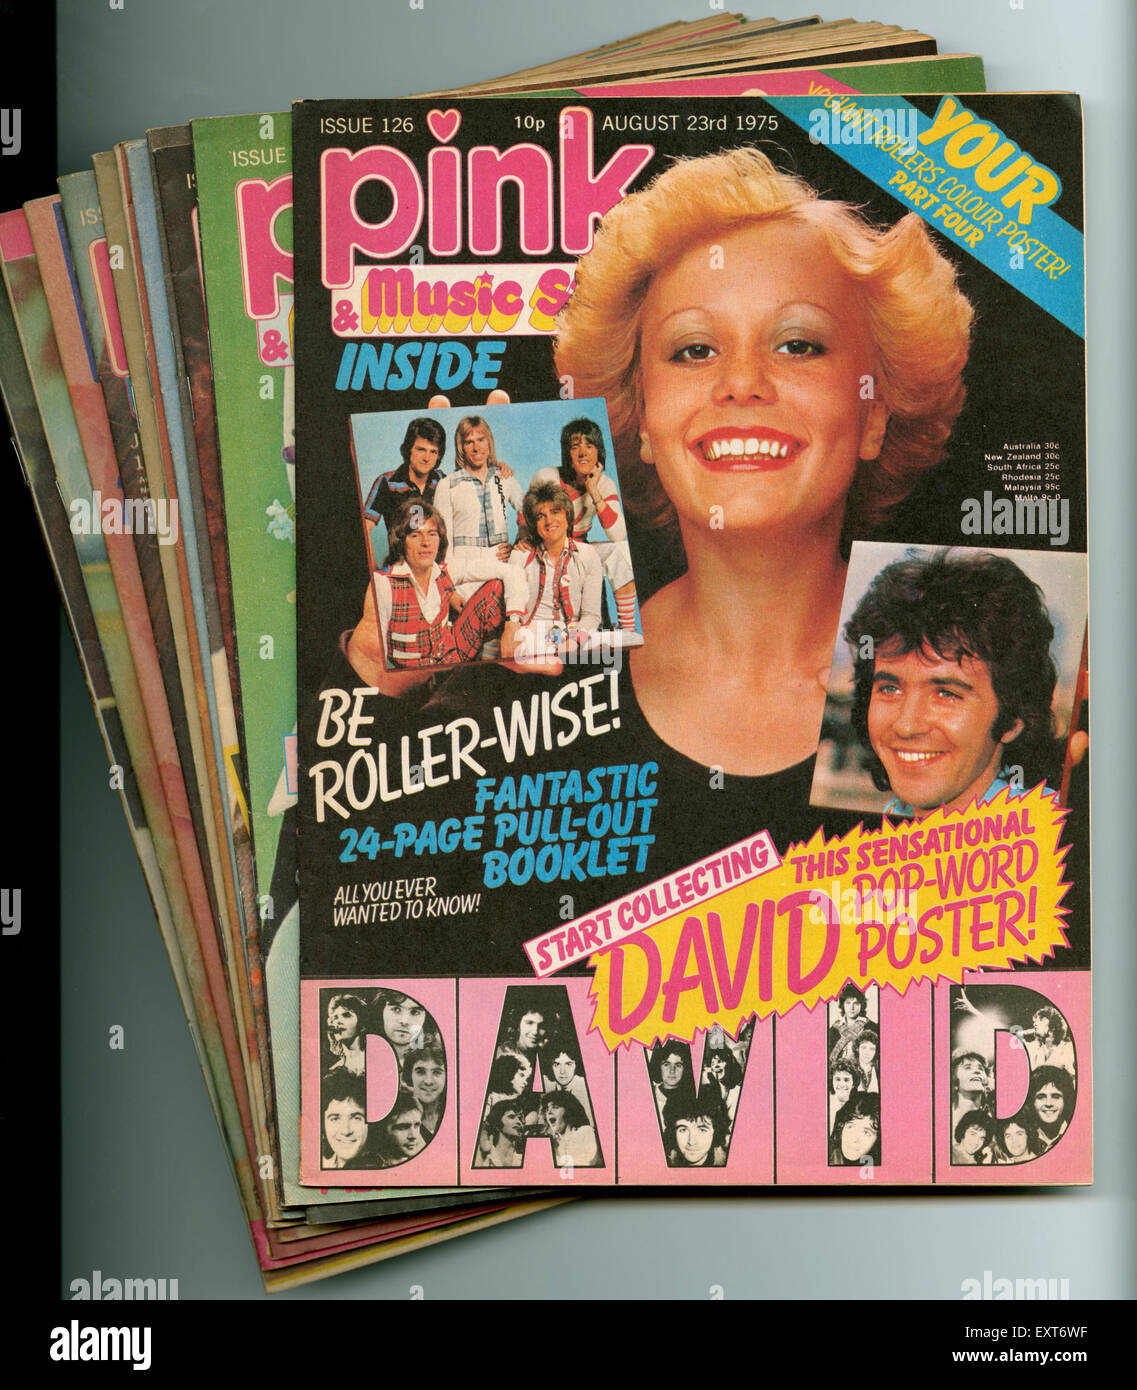 1970s Music Magazine High Resolution Stock Photography And Images Alamy